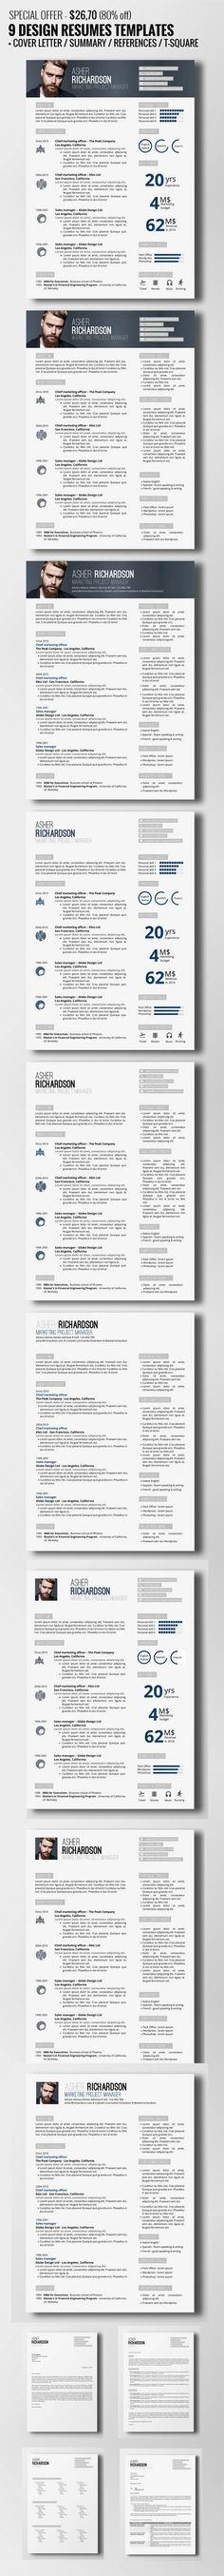 435 best Resume images on Pinterest Resume design, Design resume - resume and cover letter